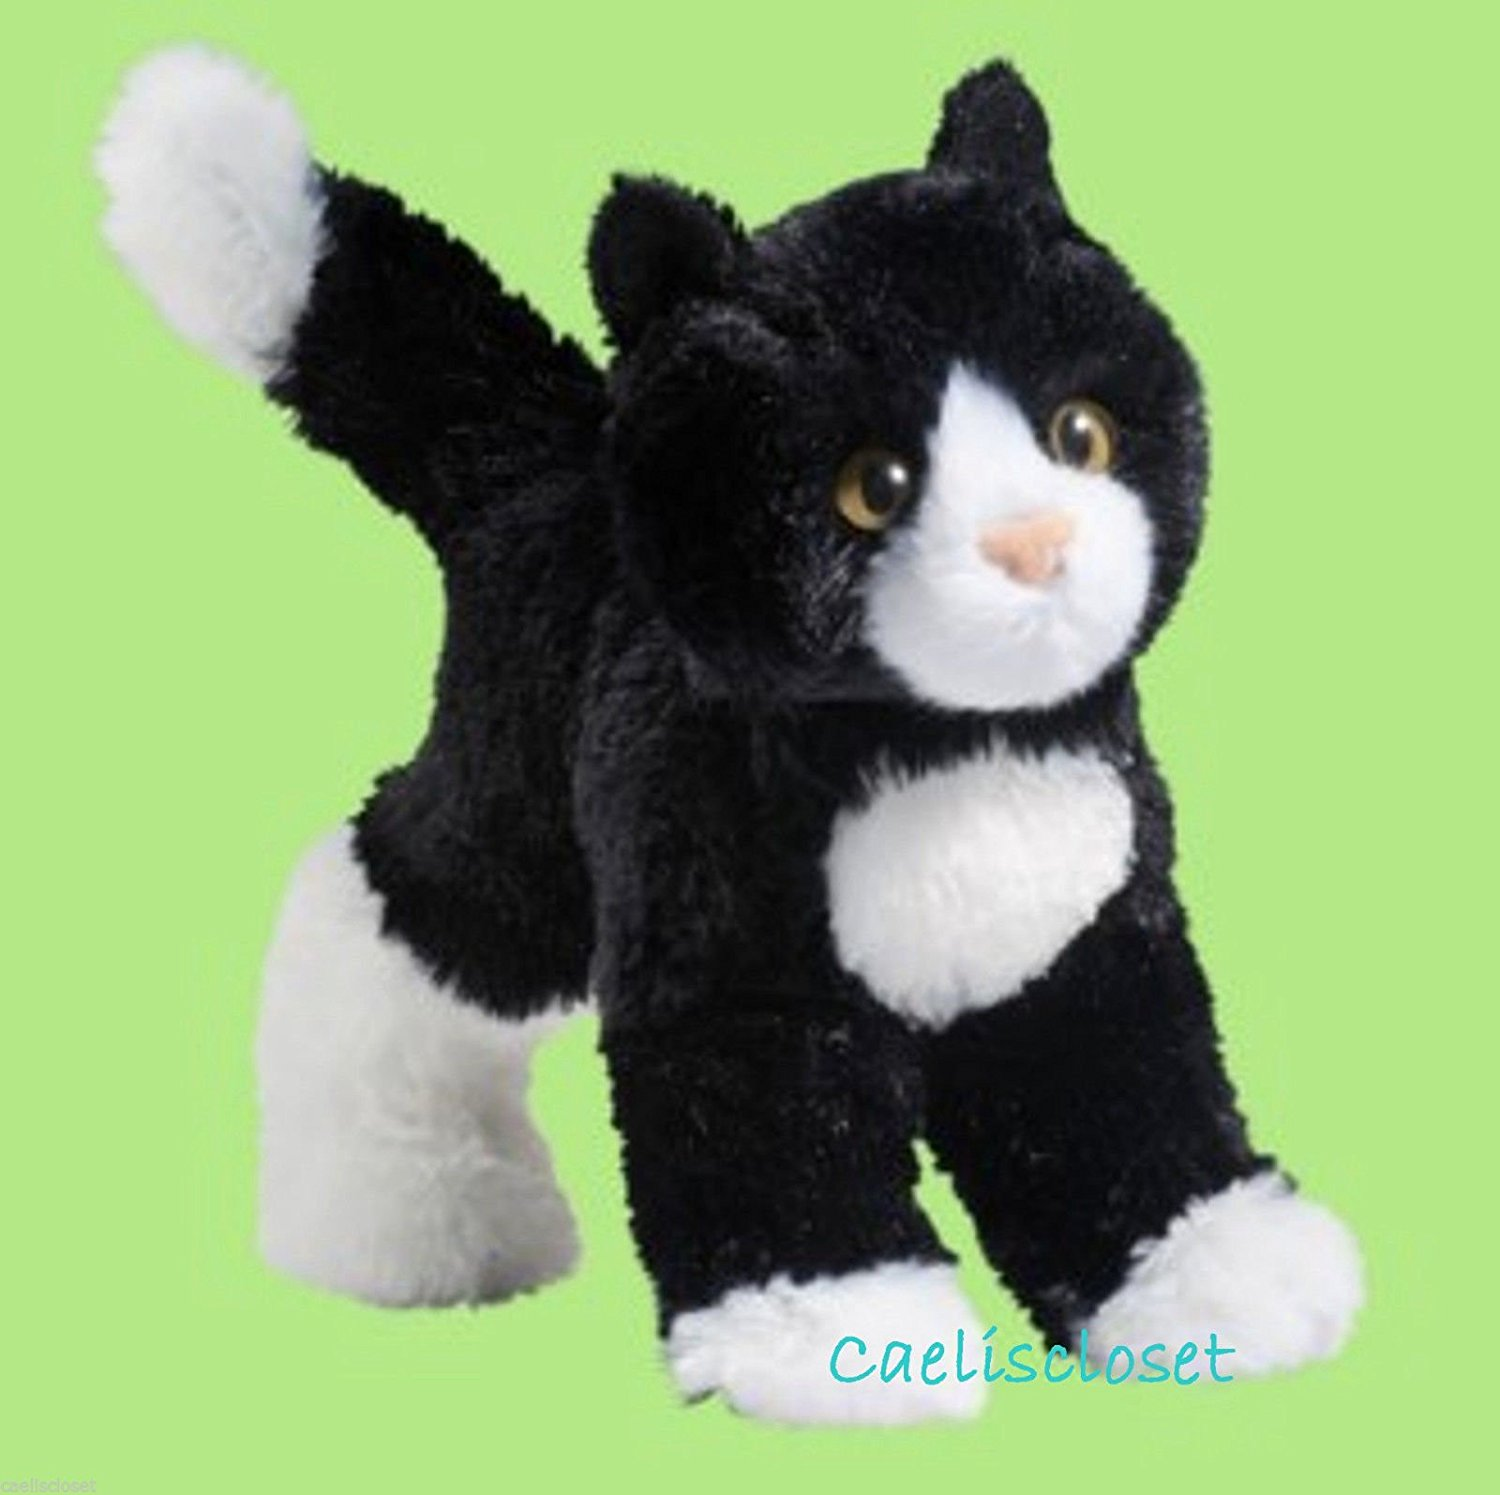 Buy Plush Snippy Black And White Cat Stuffed Tuxedo Kitten Toy New